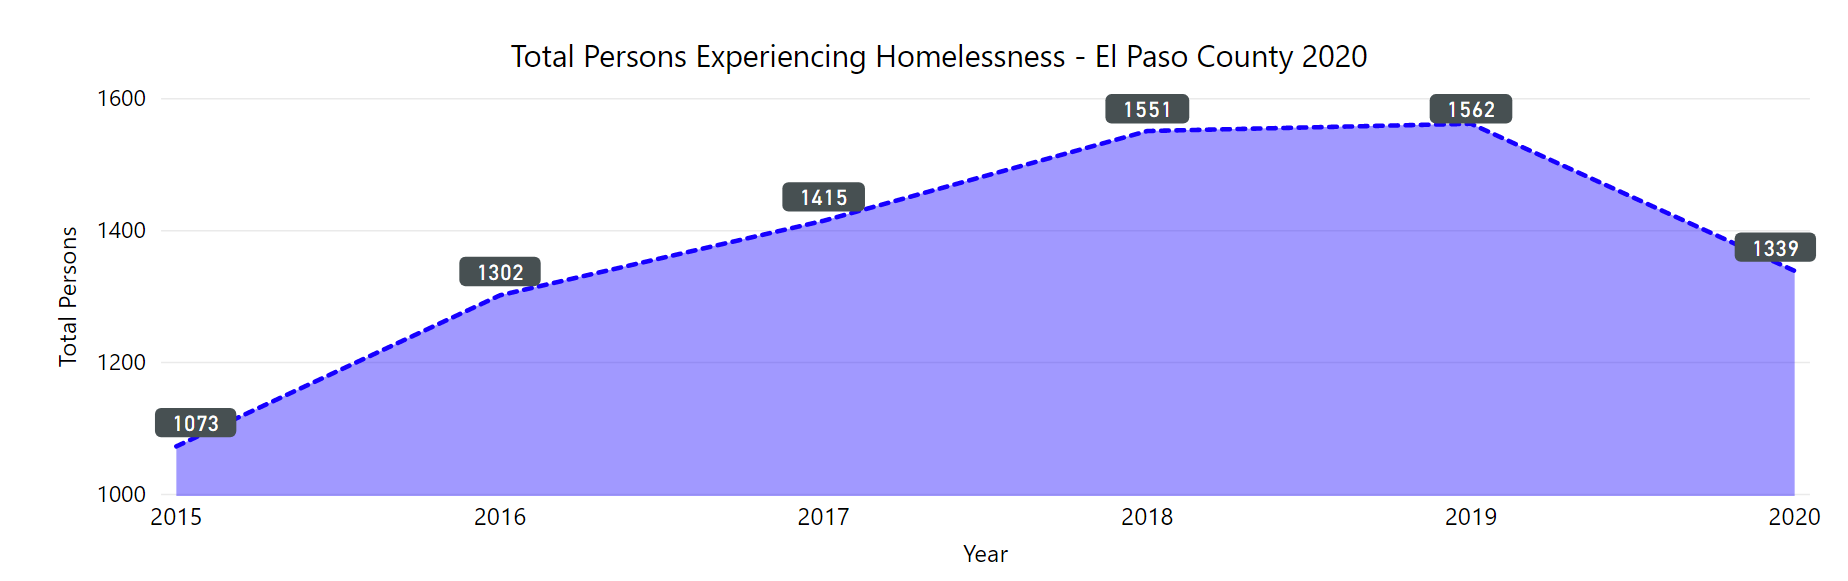 number of people experiencing homelessness from 2015 to 2020. The number increased from 2015 to 2019. It decreased in 2020.